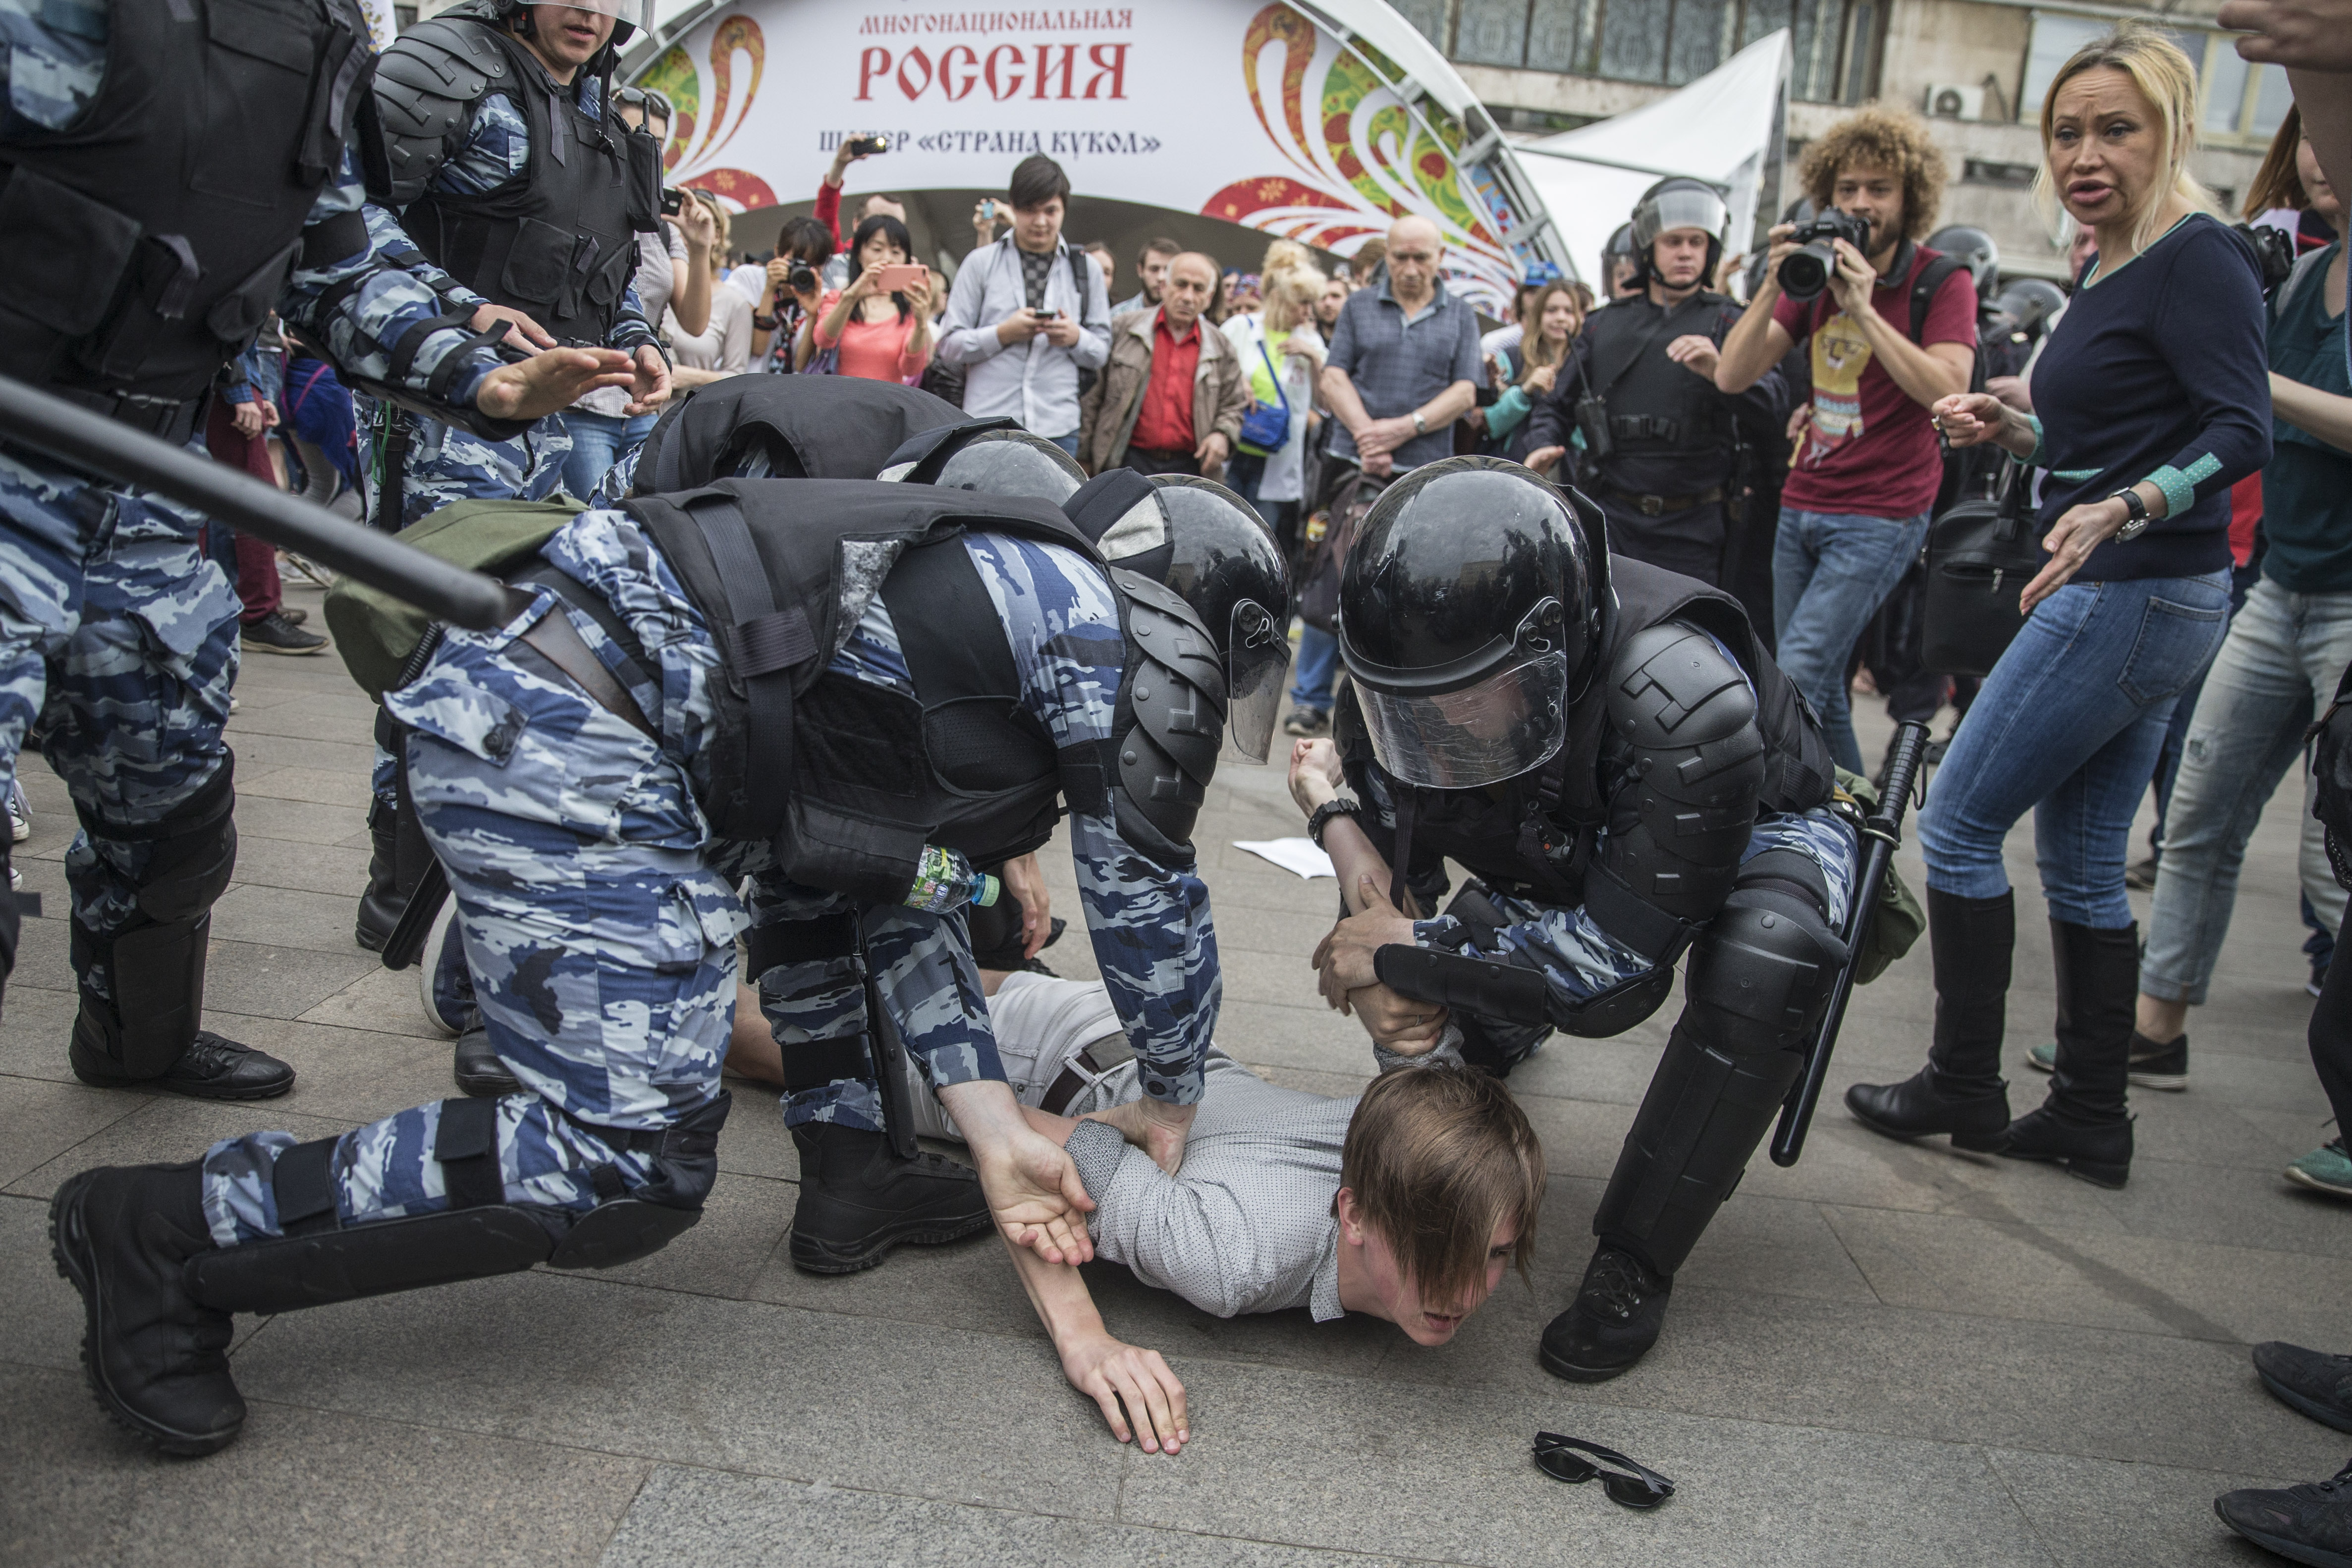 Riot police hold down a protester during a rally in Moscow on June 12. (Photo: Evgeny Feldman/This Is Navalny project)